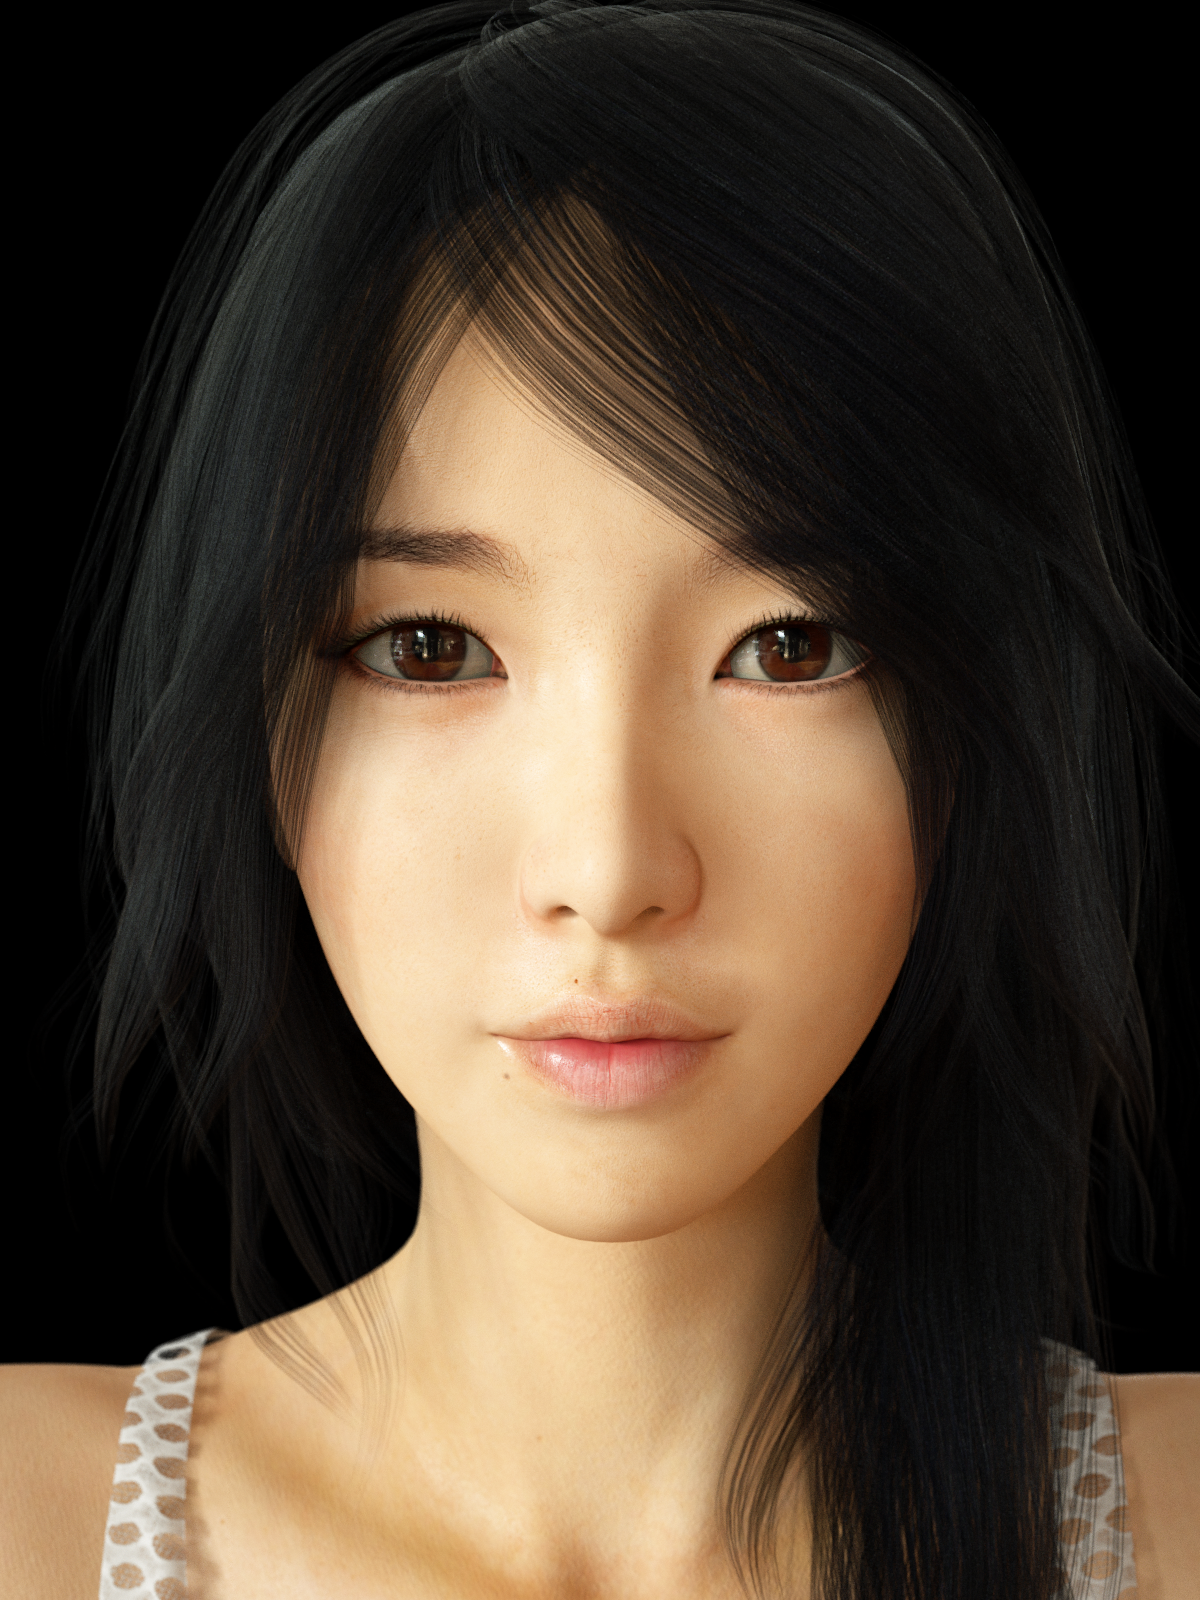 Asian free girl model picture